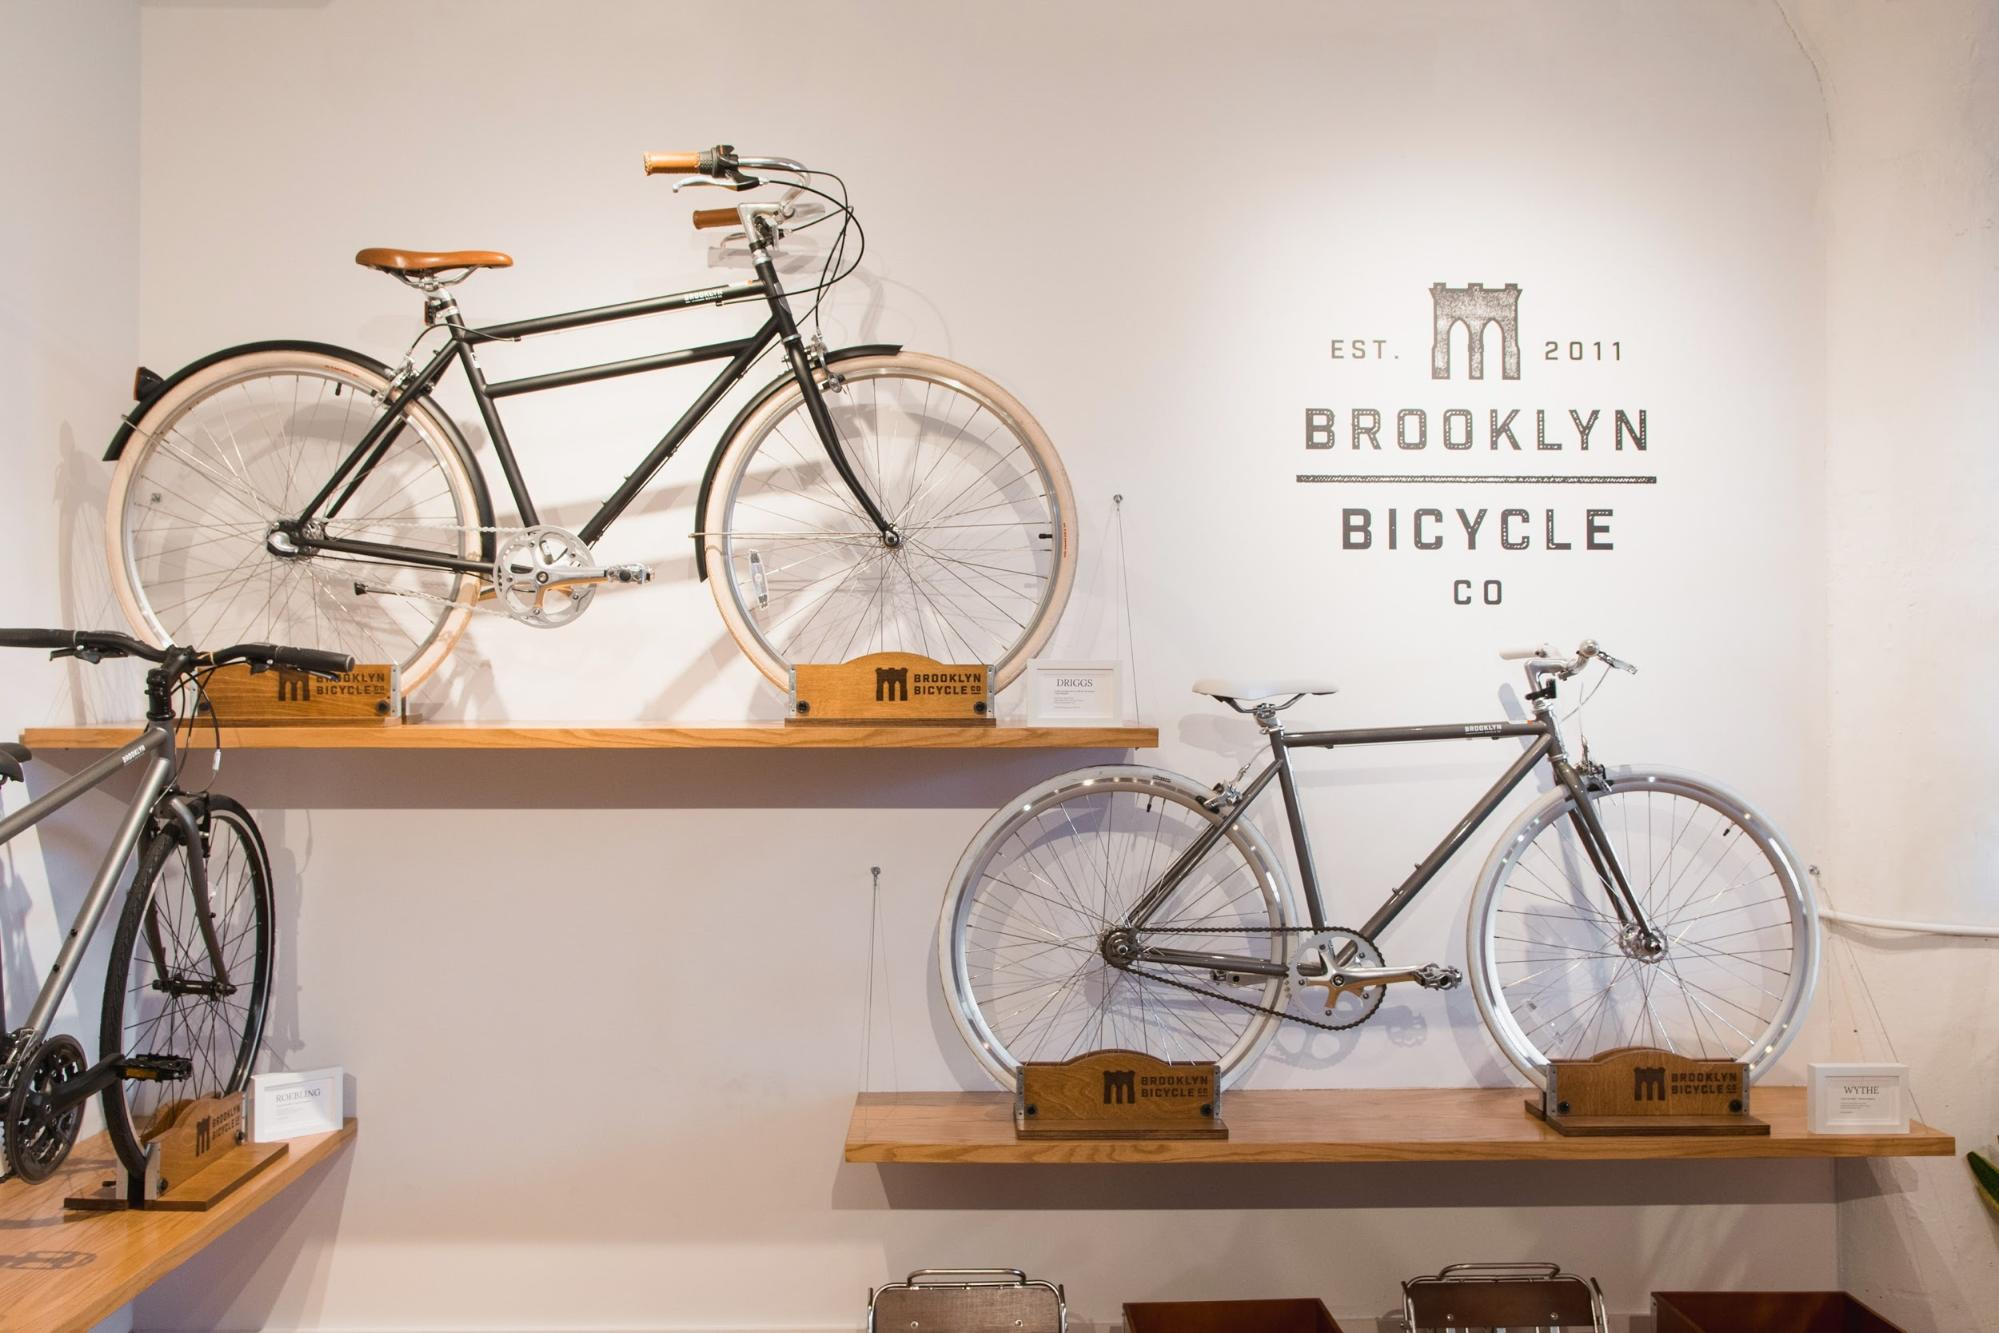 Bicycles displayed within the showroom by Brooklyn Bicycle Co.